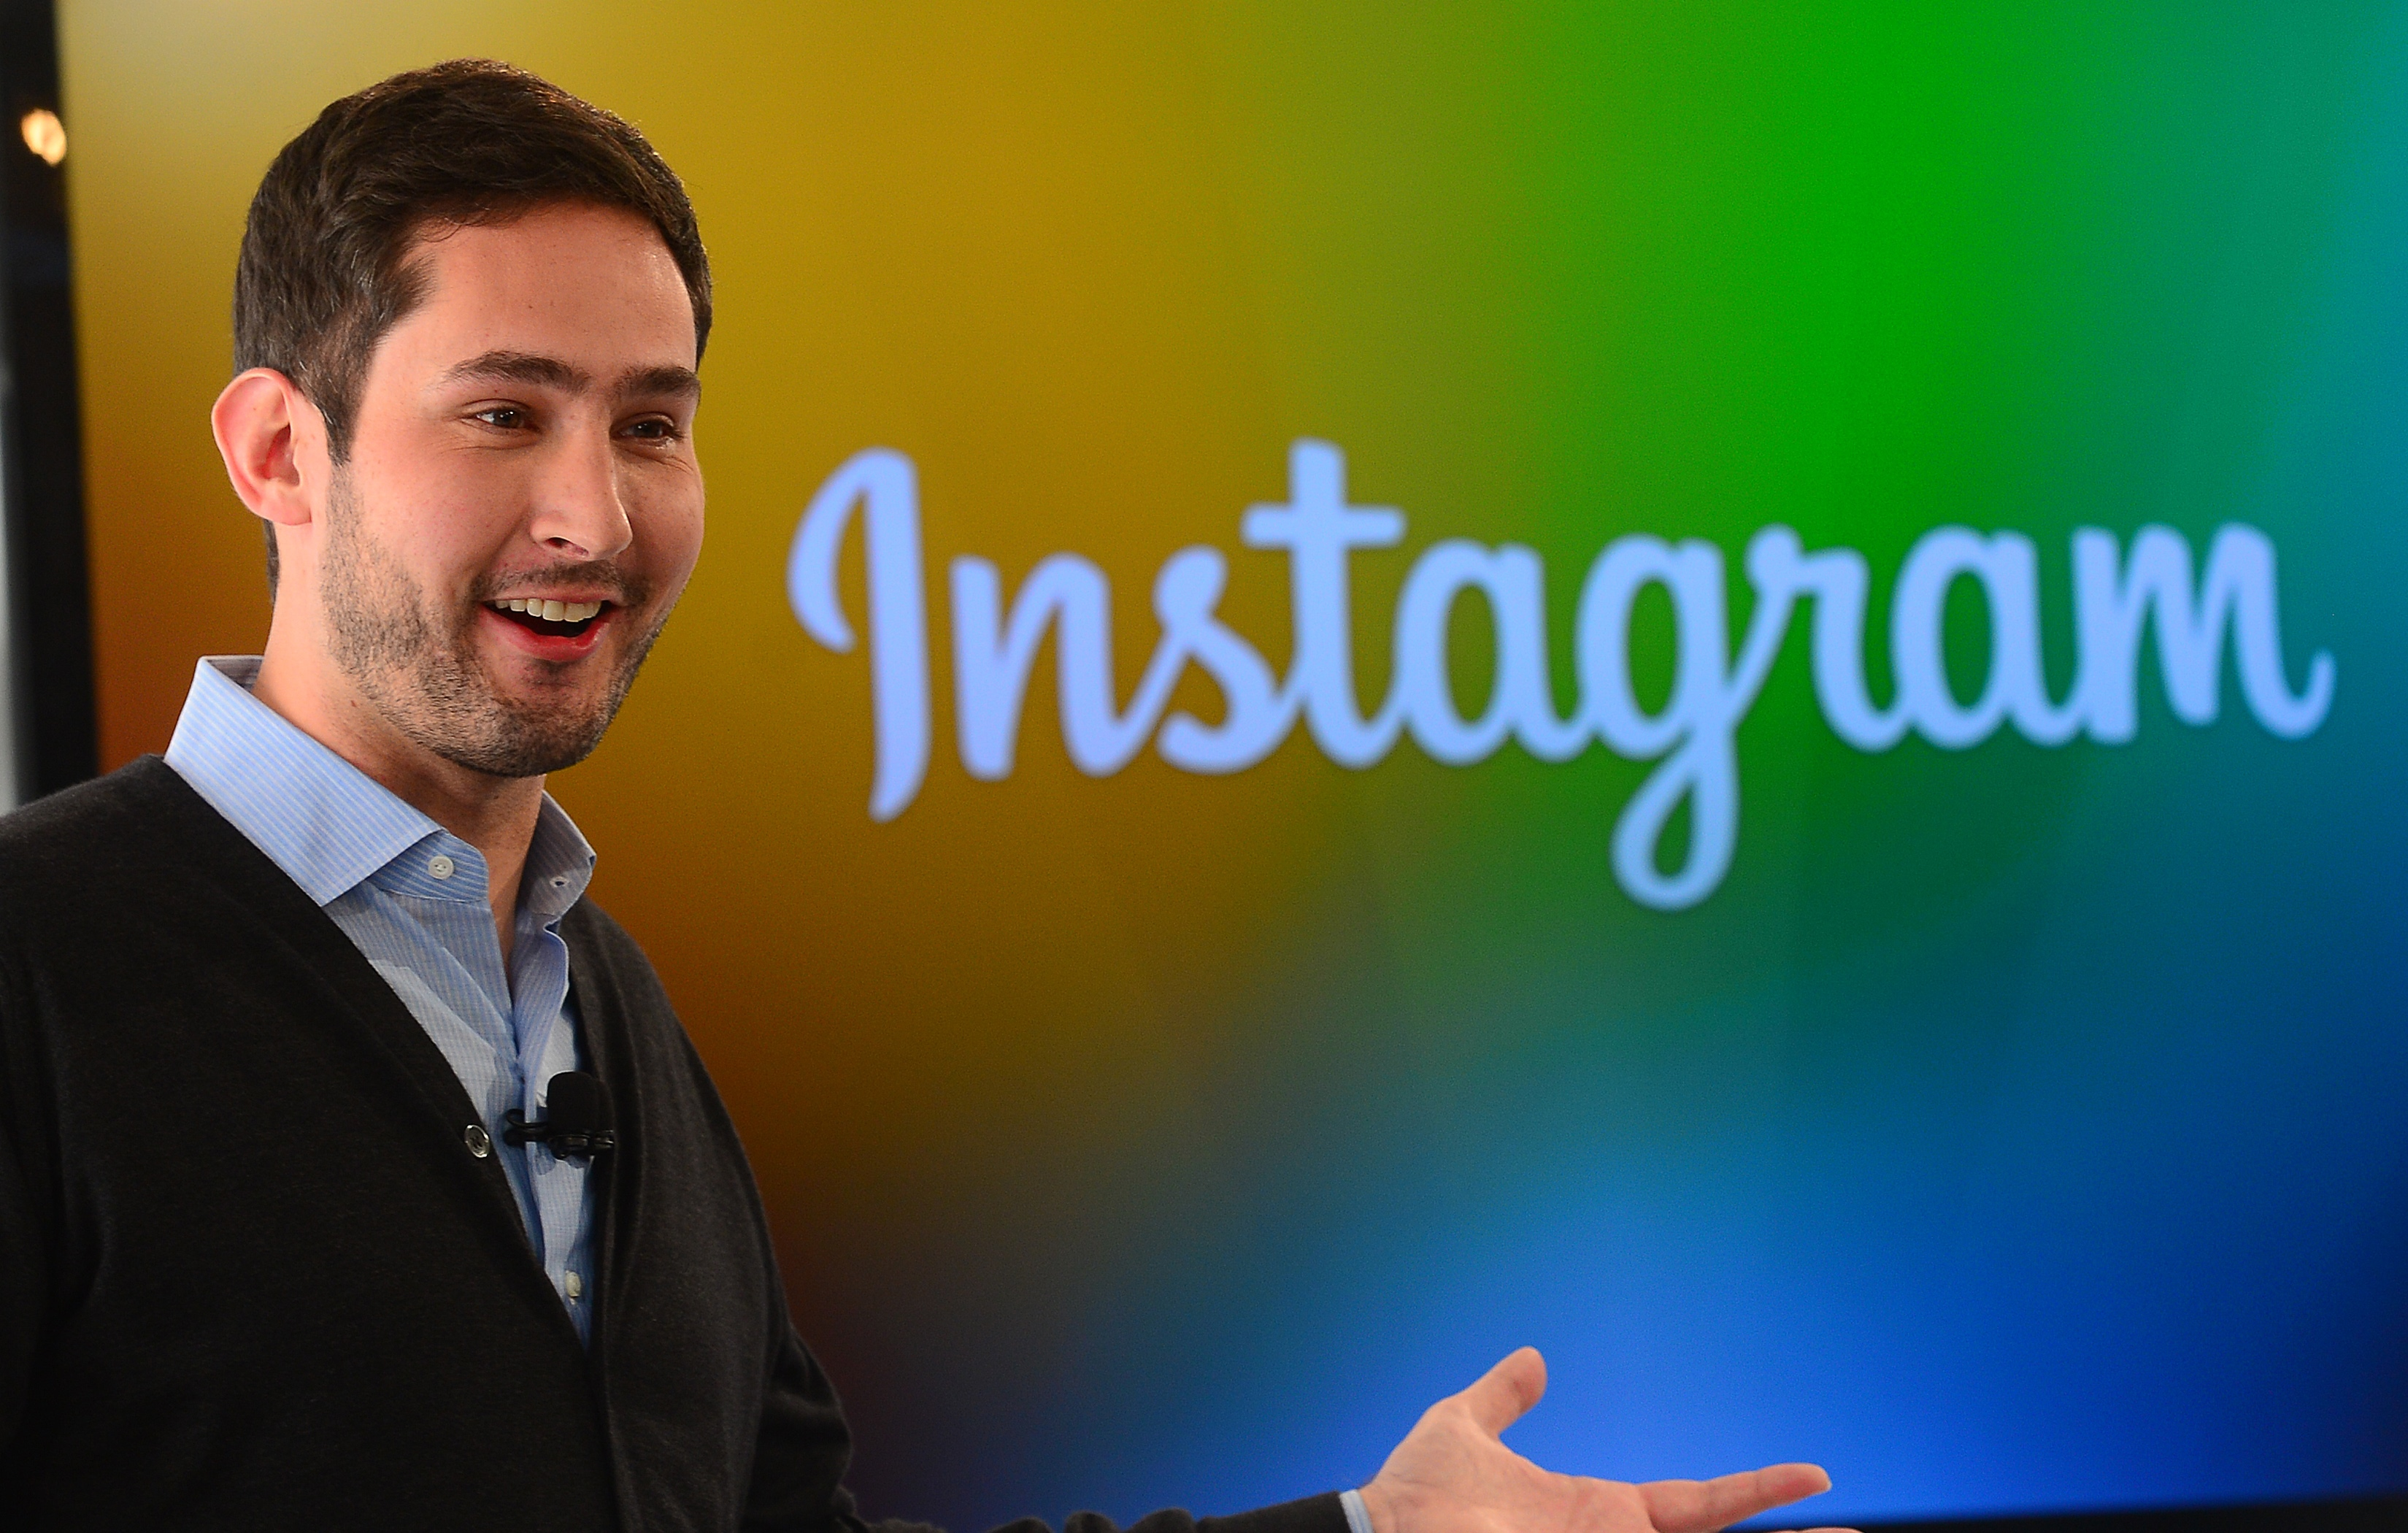 Kevin Systrom: Inventor of Instagram, The Home Of Influencers And Celebrities